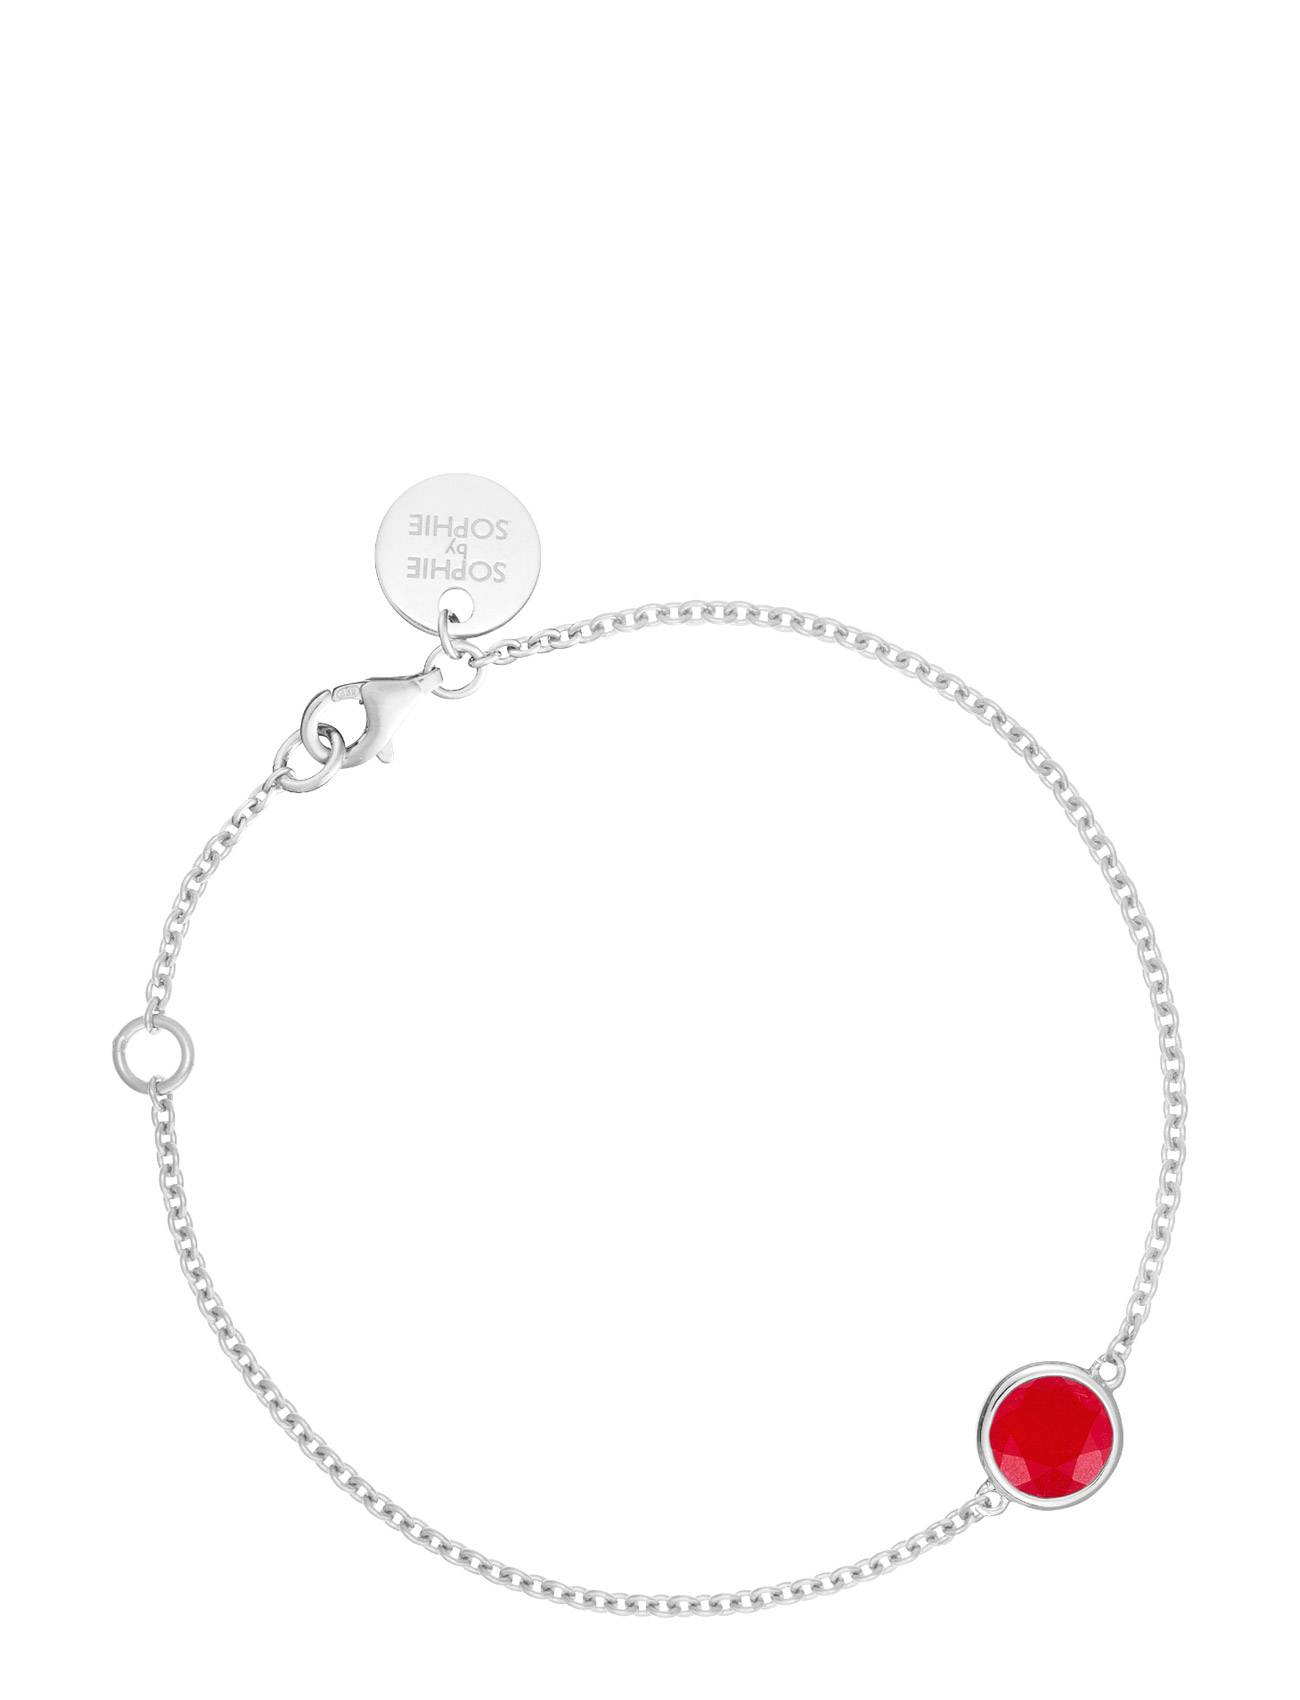 SOPHIE by SOPHIE Birthstone Bracelet - March